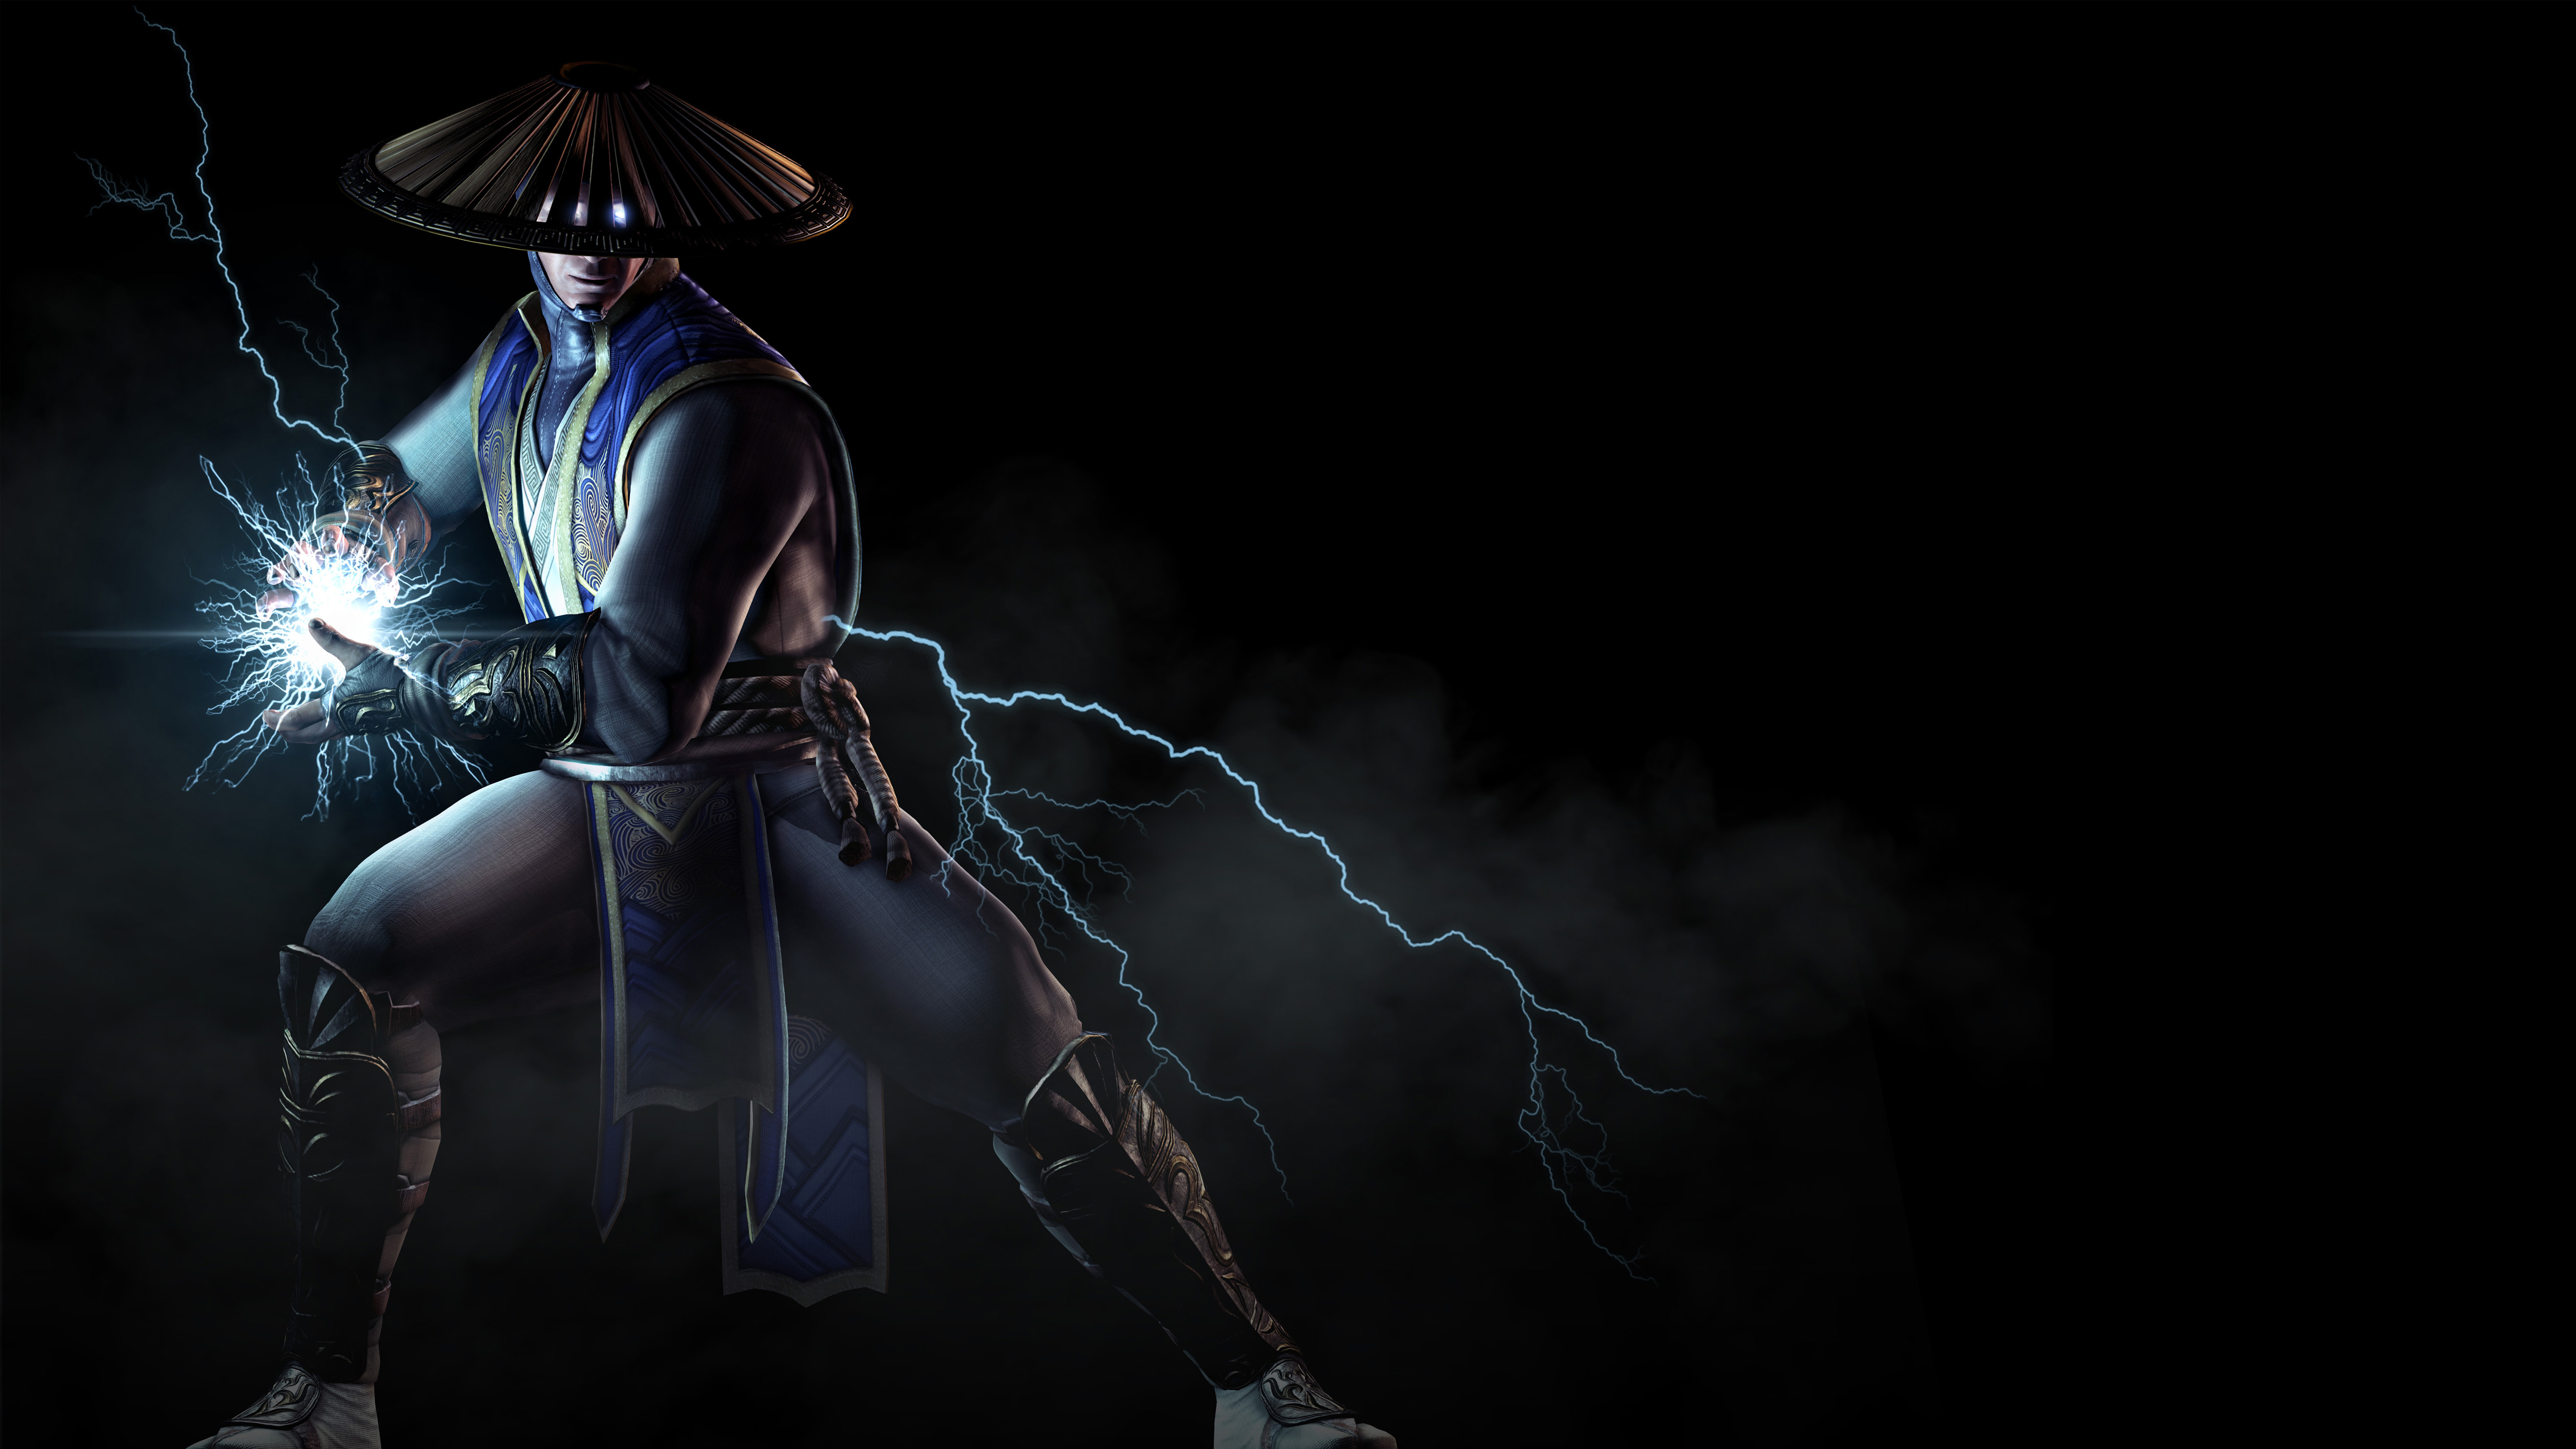 Mortal Kombat X Background: Kombat Wallpapers, Photos And Desktop Backgrounds Up To 8K